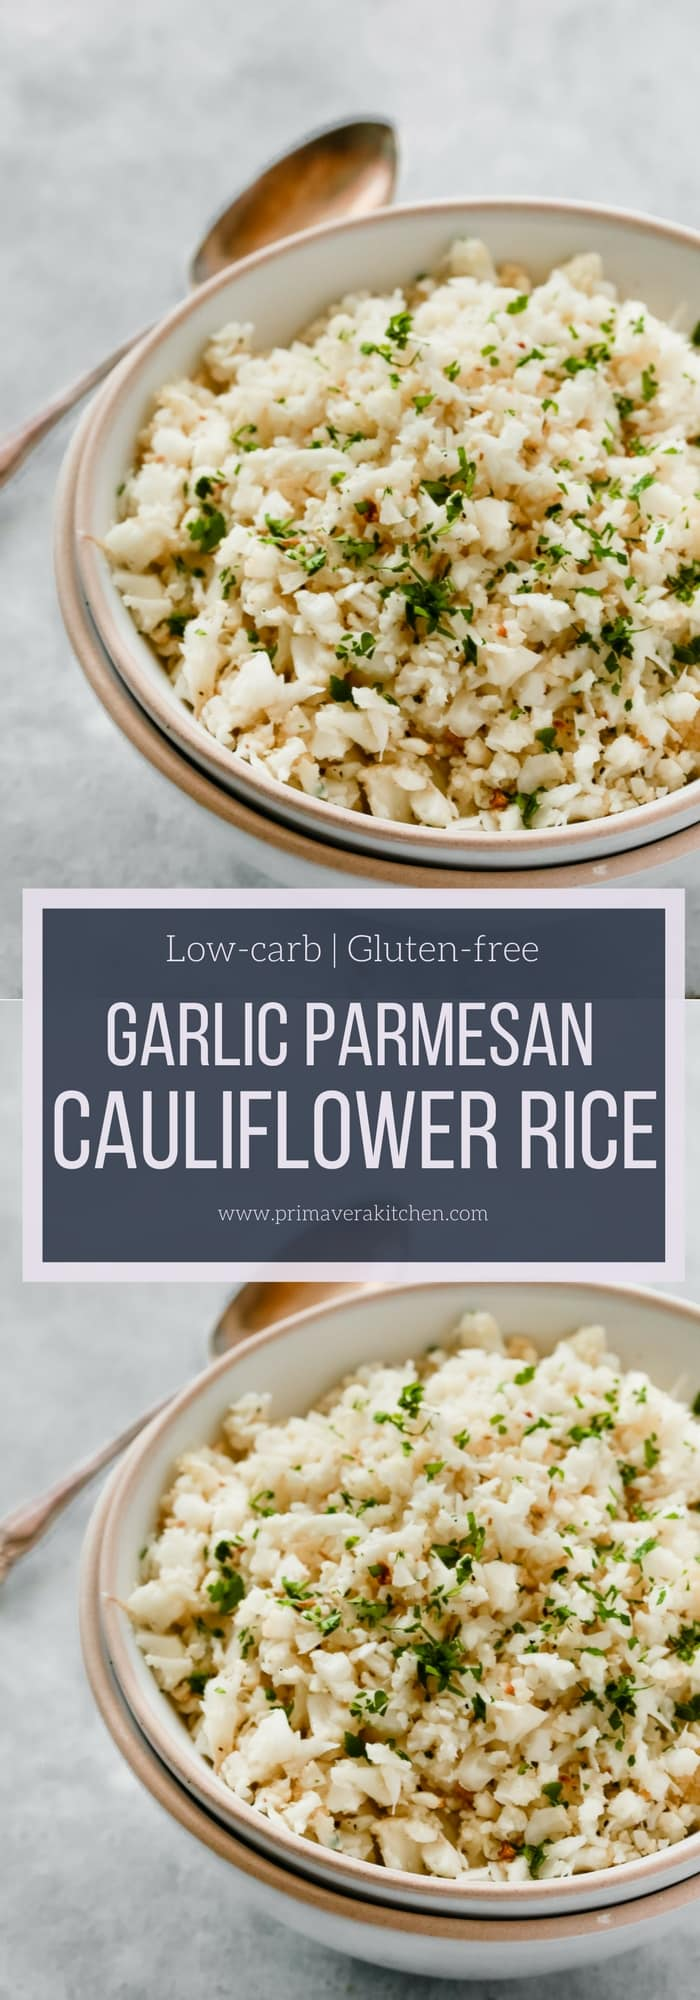 Garlic Parmesan Cauliflower Rice Primavera Kitchen Recipe